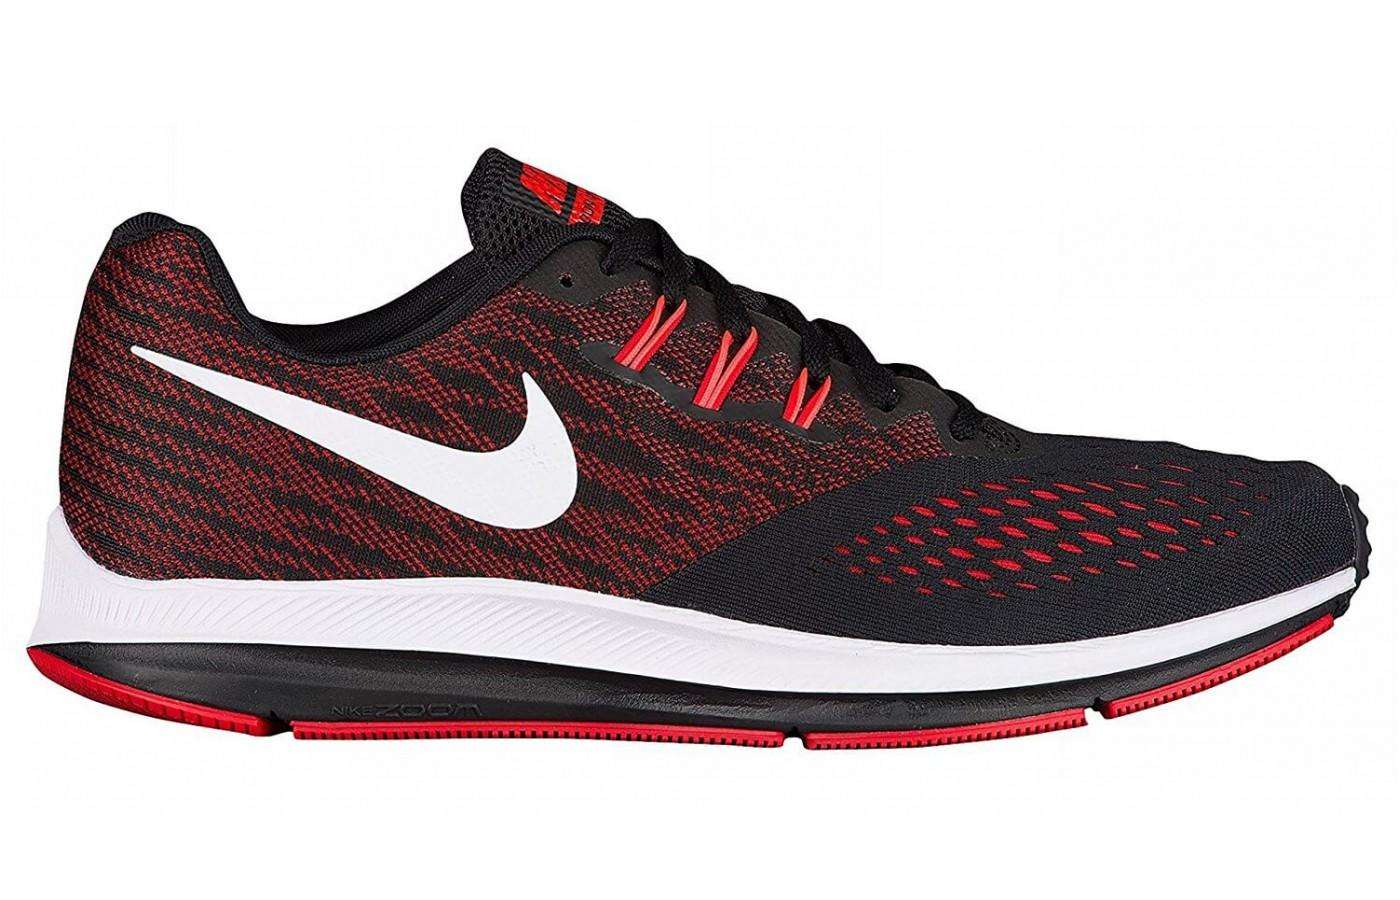 reputable site 490c3 ca0b2 The Nike Zoom Winflow 4 is lightweight and breathable.